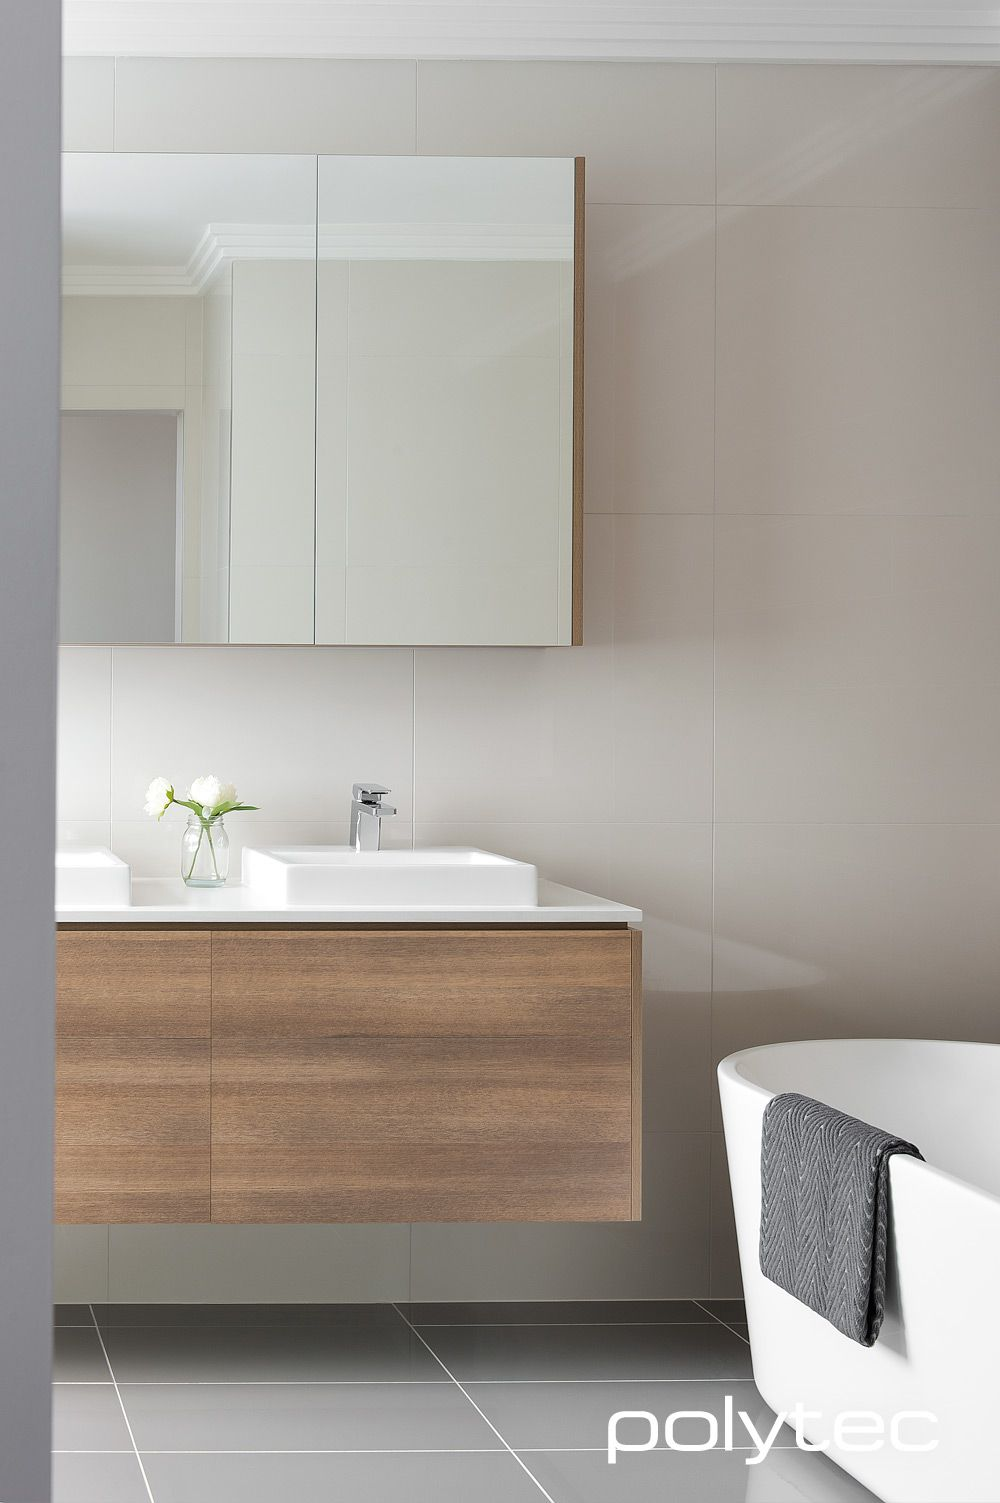 Sleek Looking Modern Bathroom Vanity In Polytec RAVINE Sepia Oak.  Http://www.polytec.com.au/colour/sepia Oak/